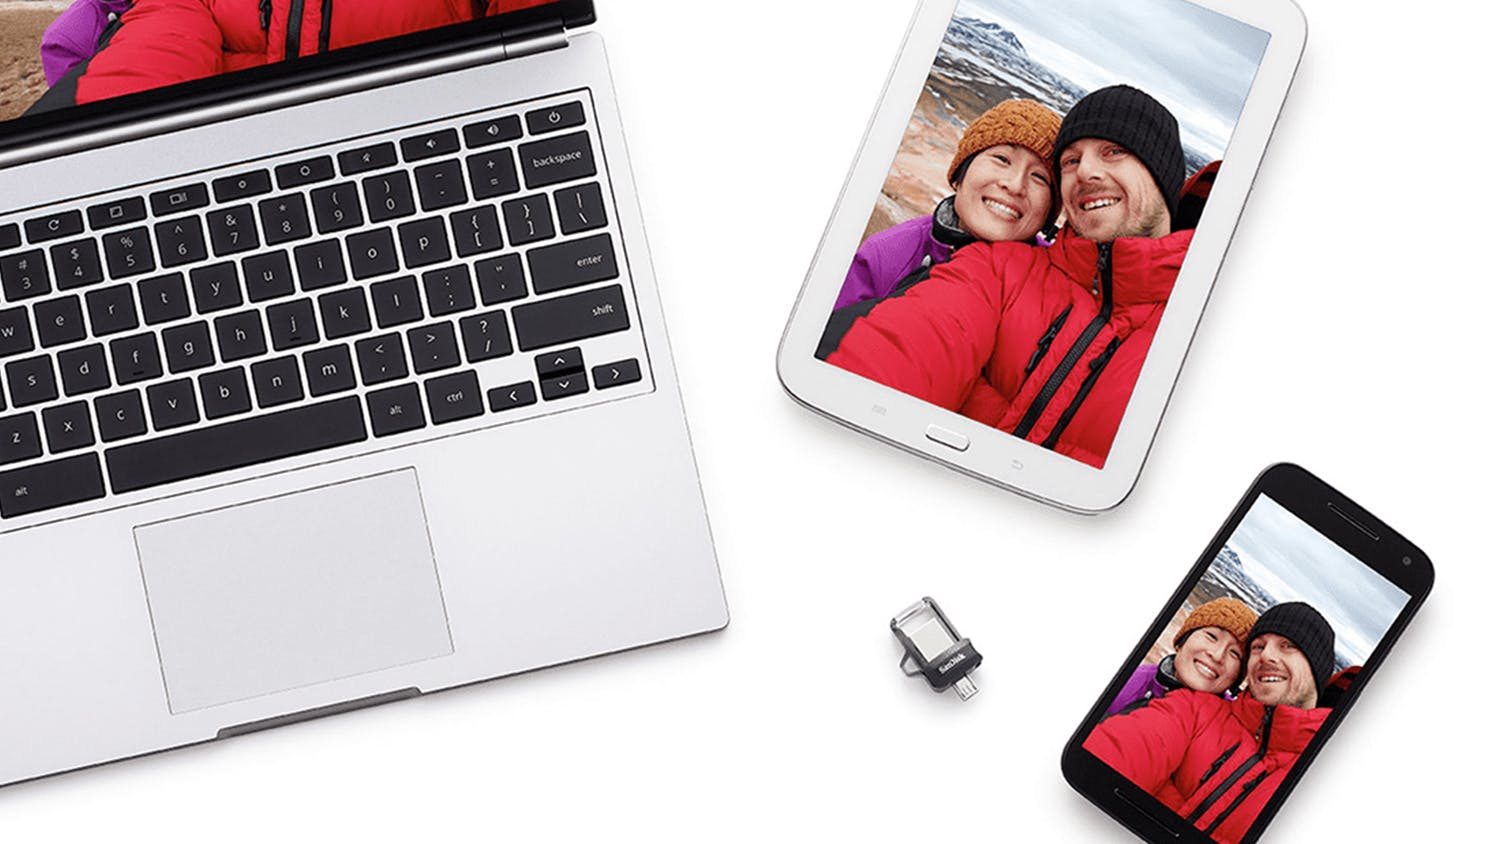 Sandisk Ultra On-The-Go Dual Drive M3.0 128GB